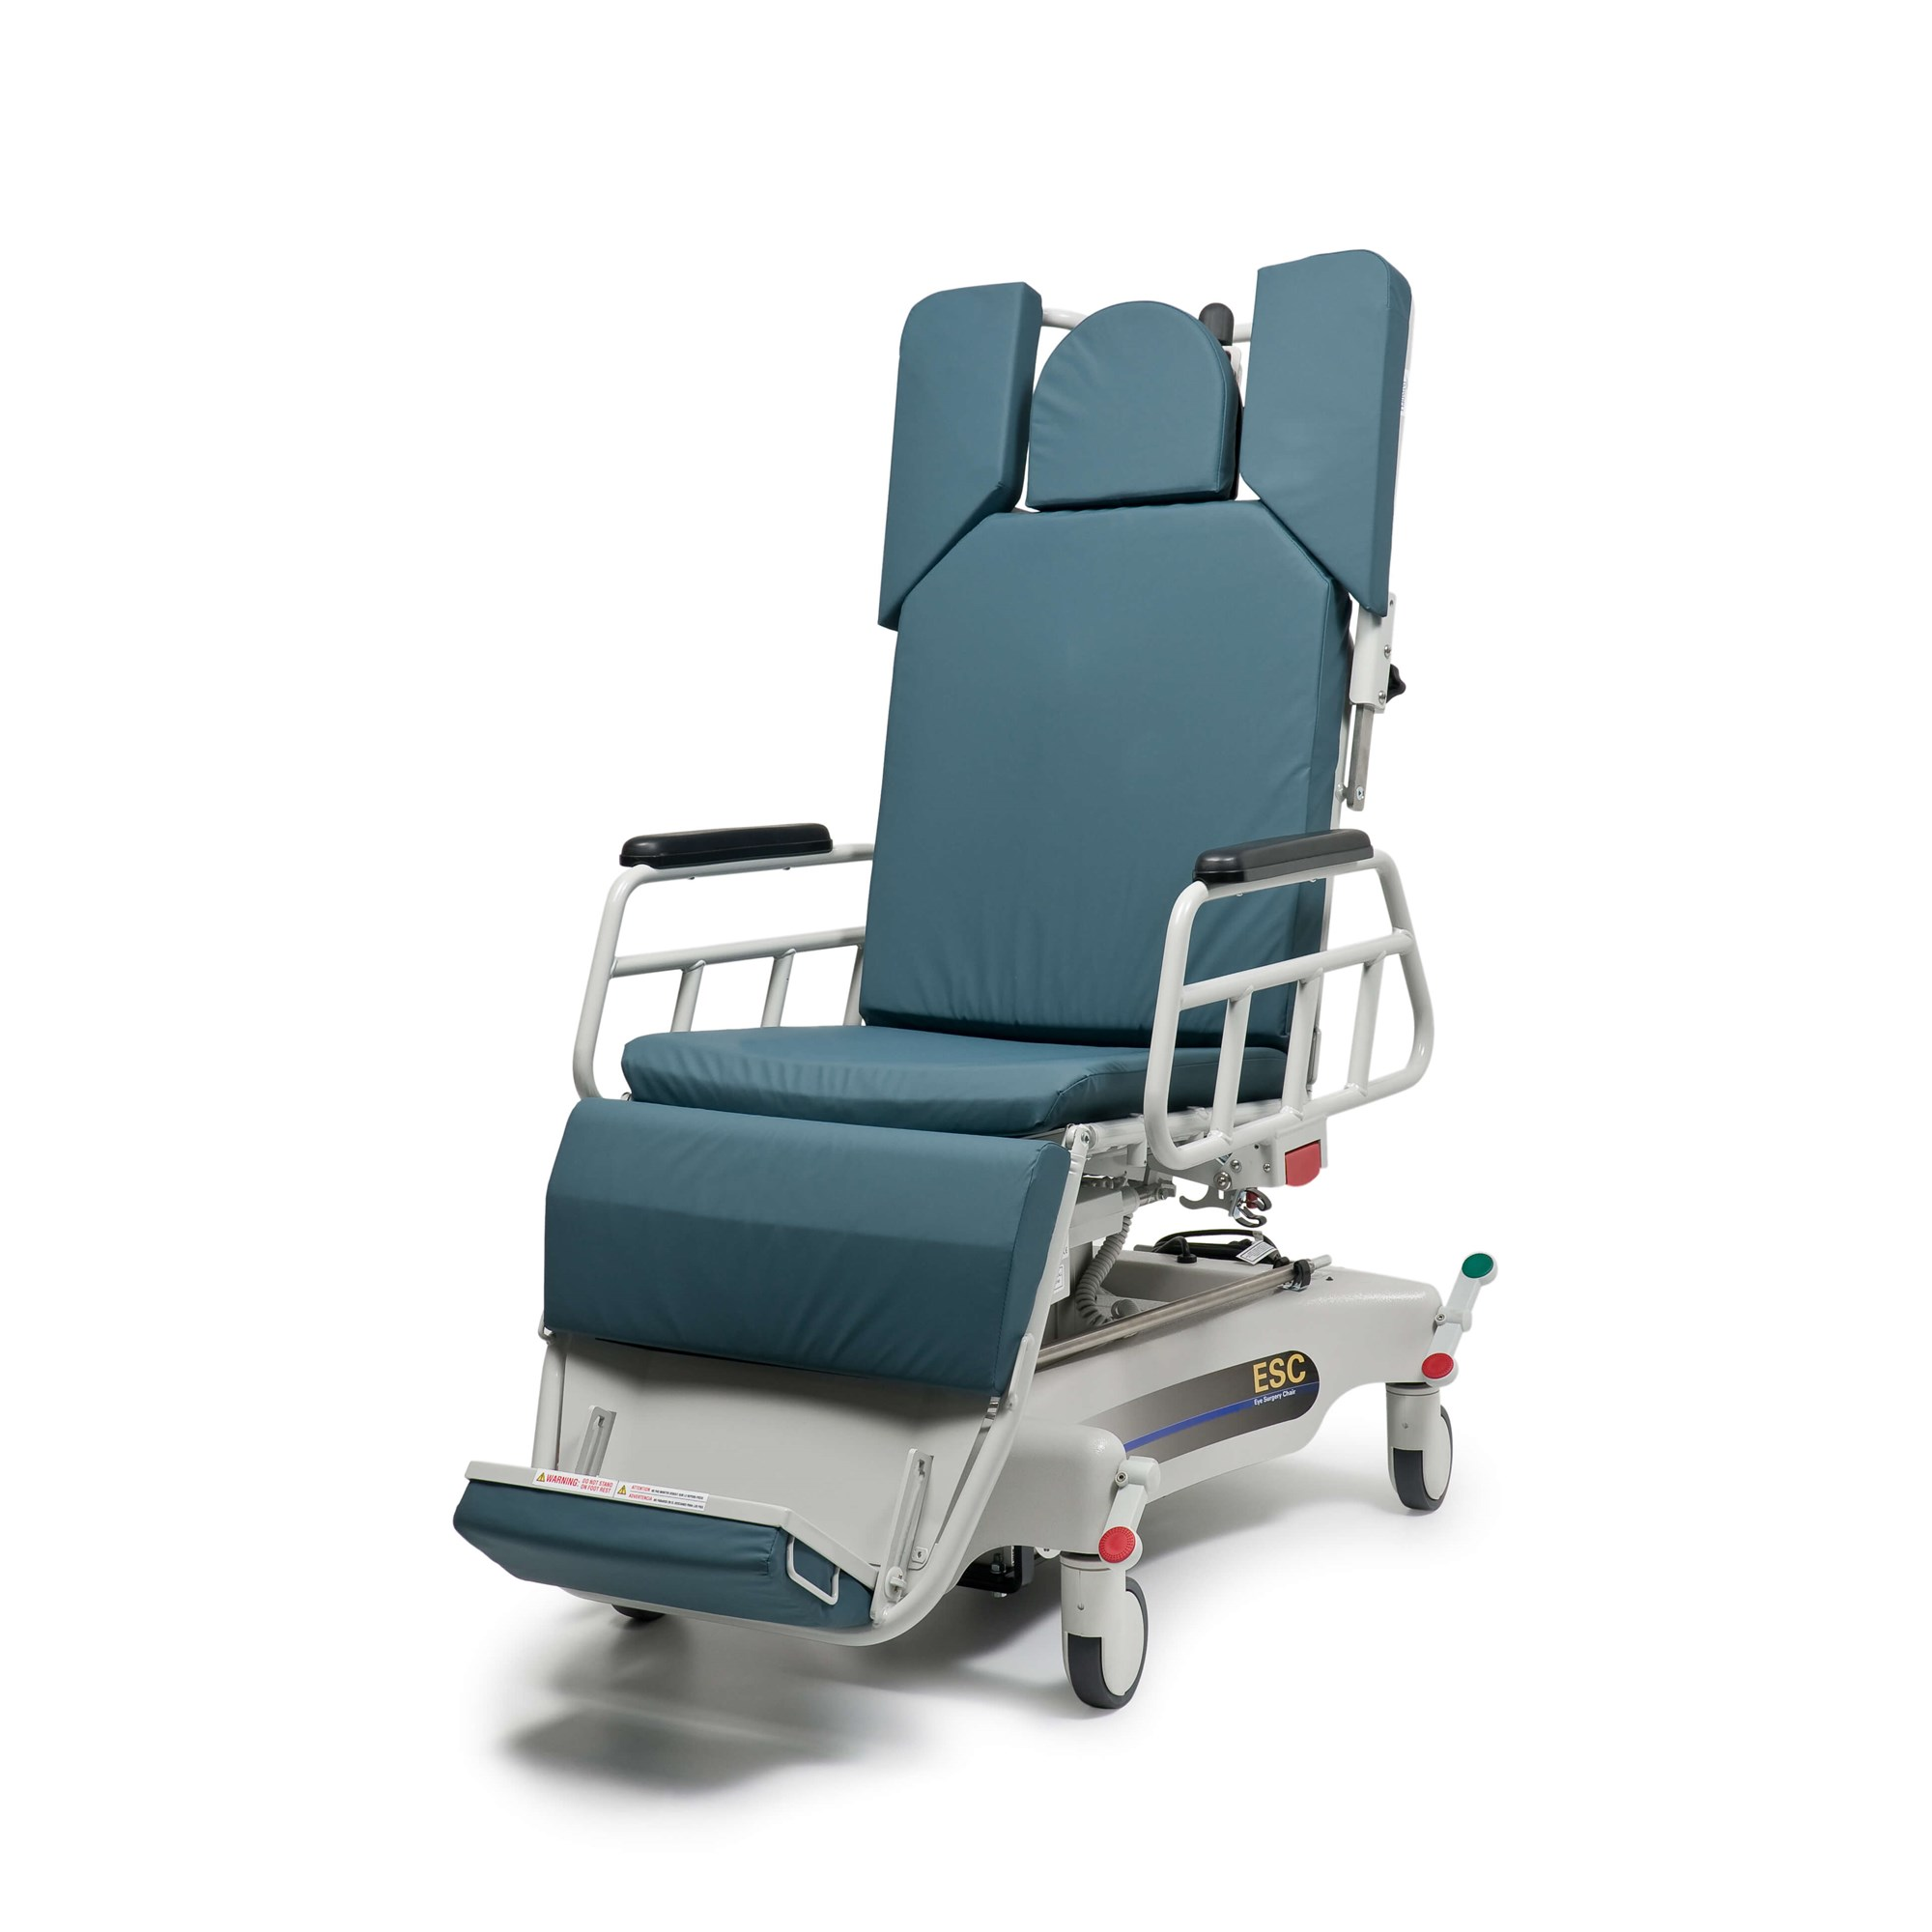 Stretcher Chair Hausted Stretchers And Chairs Newmaw Medical Ltd